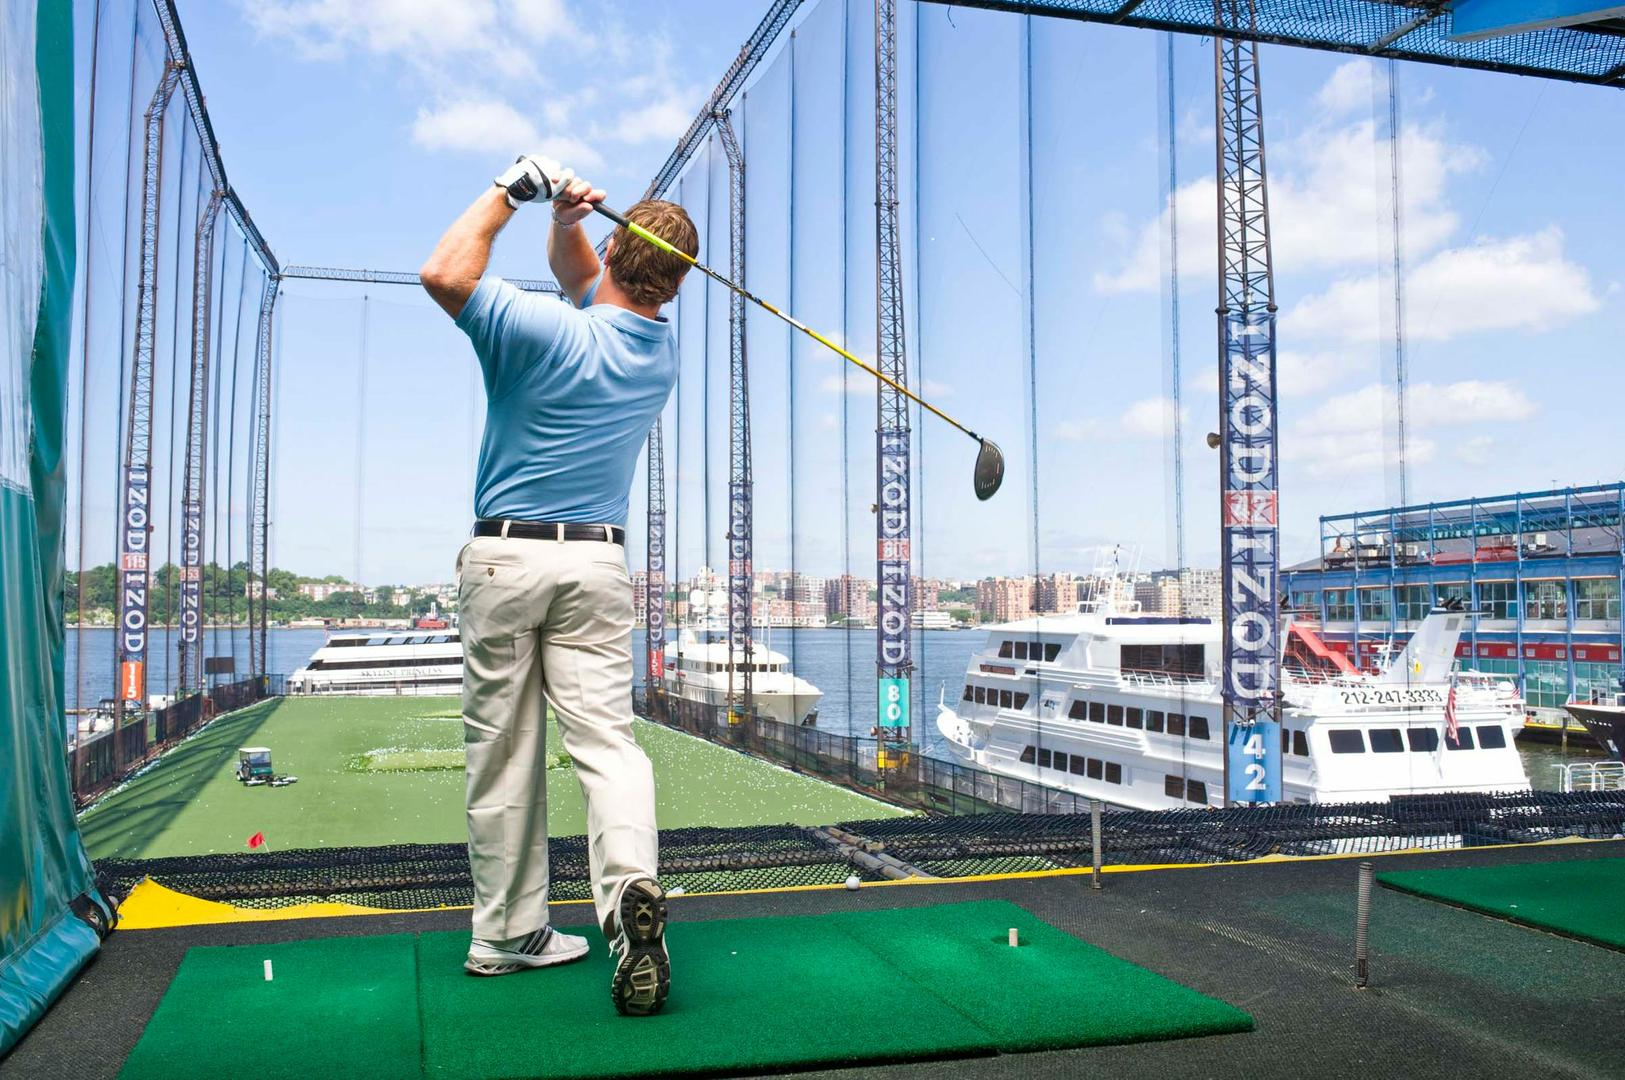 space at Golf Club at Chelsea Piers